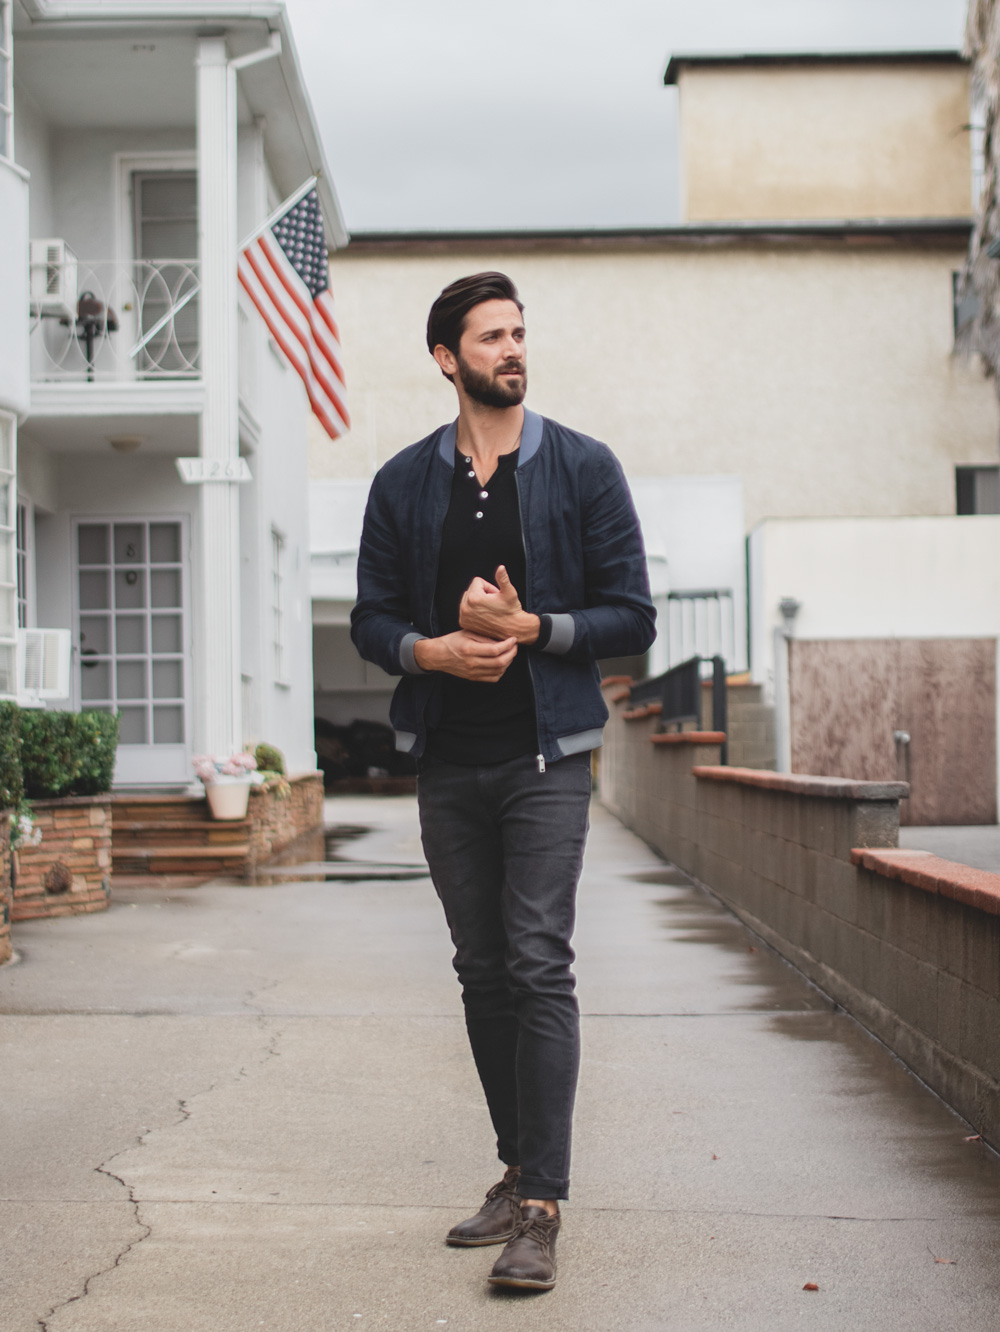 bomber jacket henley gray jeans brown boots - men's fashion ideas